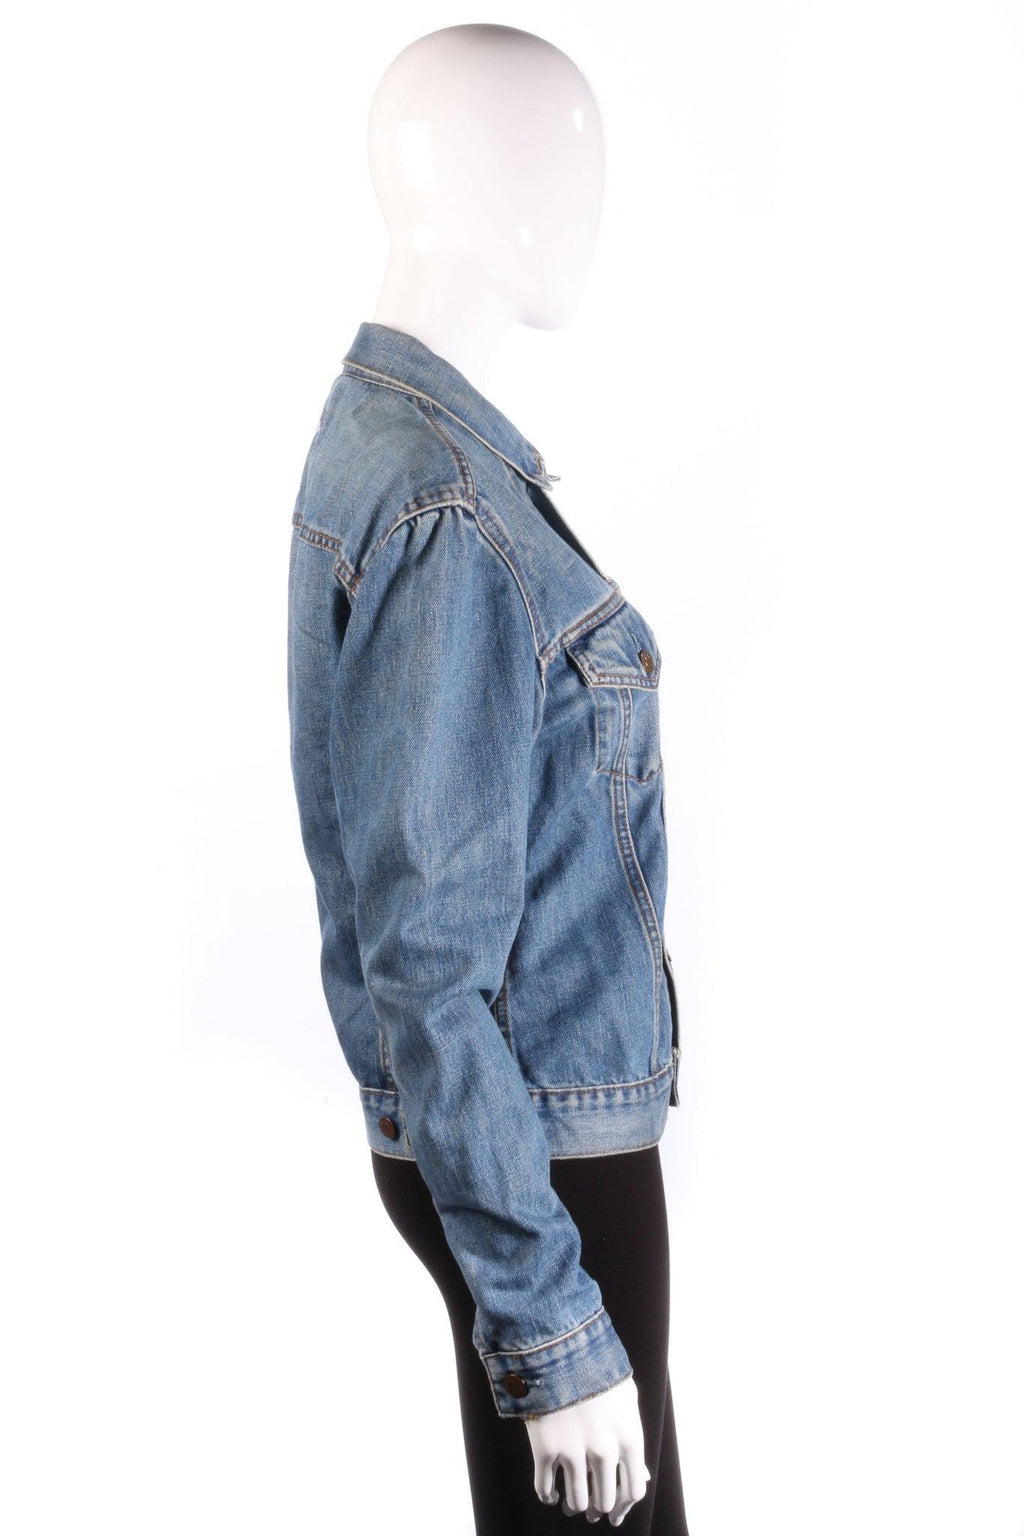 Levi denim jacket size M side